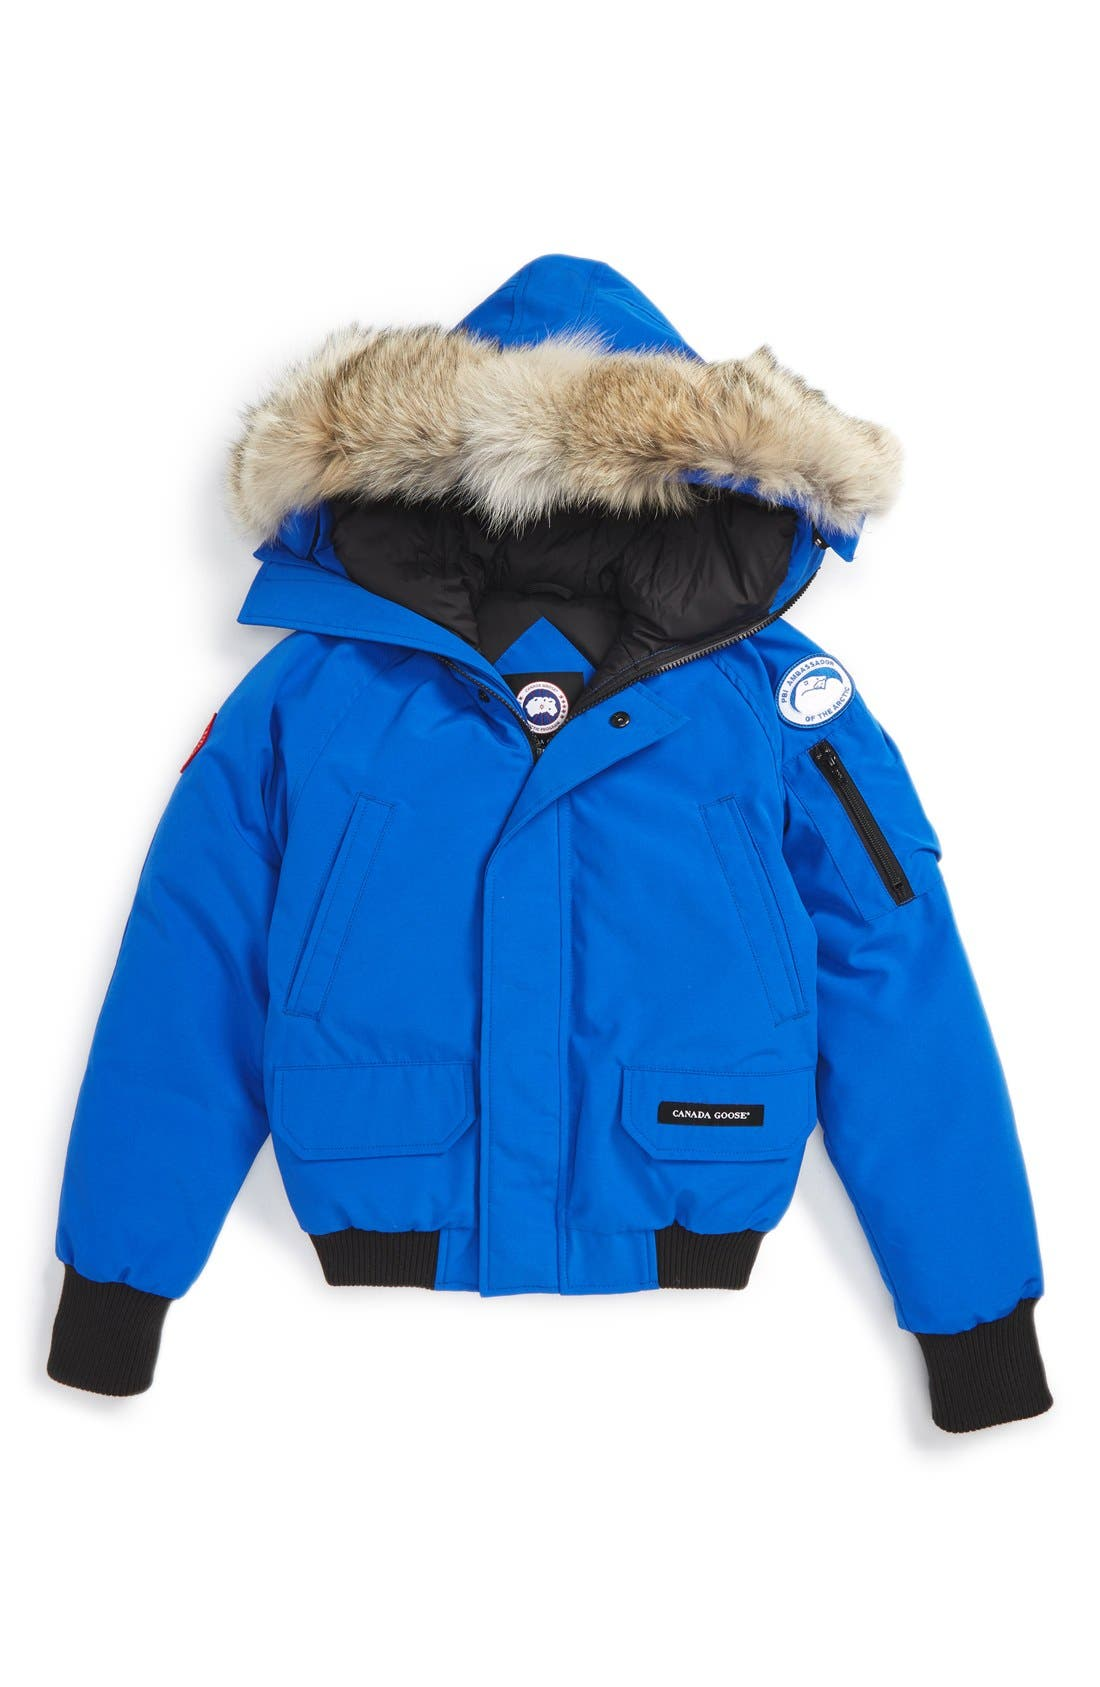 Canada Goose 'PBI Chilliwack' Hooded Bomber Jacket with Genuine Coyote Fur Trim (Little Boys & Big Boys)